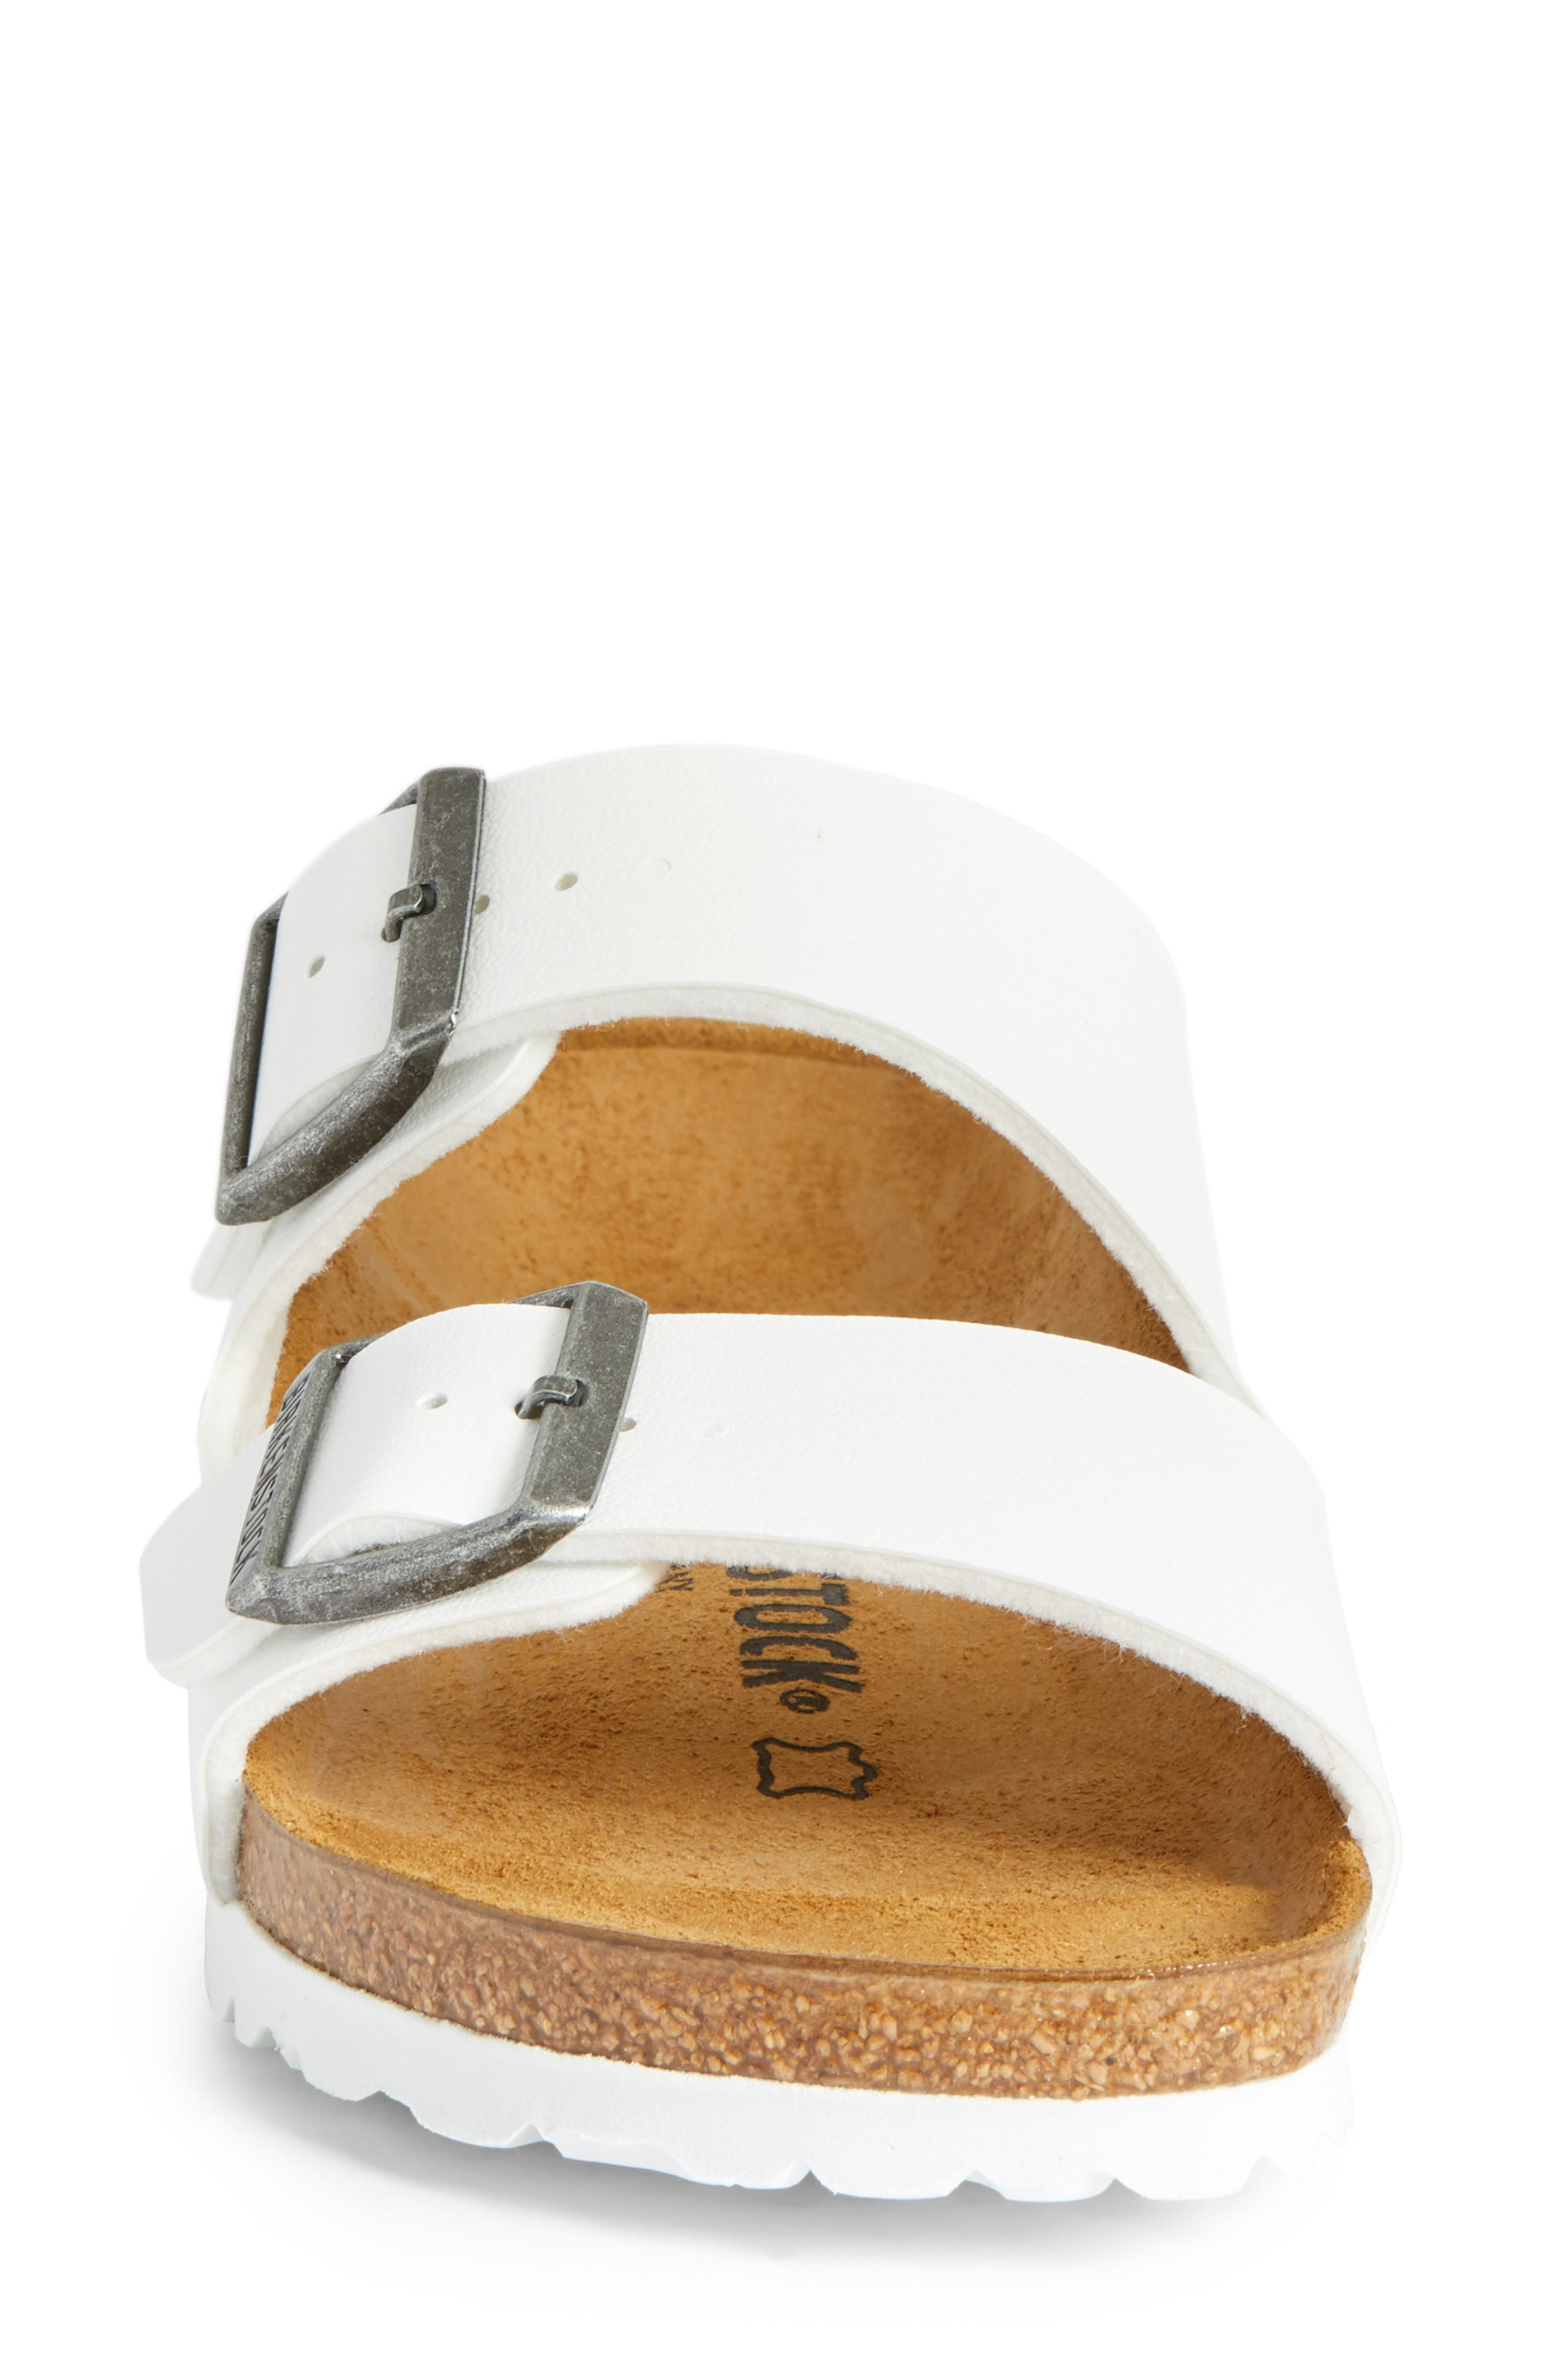 'Arizona' White Birko-Flor Sandal,                             Alternate thumbnail 5, color,                             WHITE SYNTHETIC LEATHER